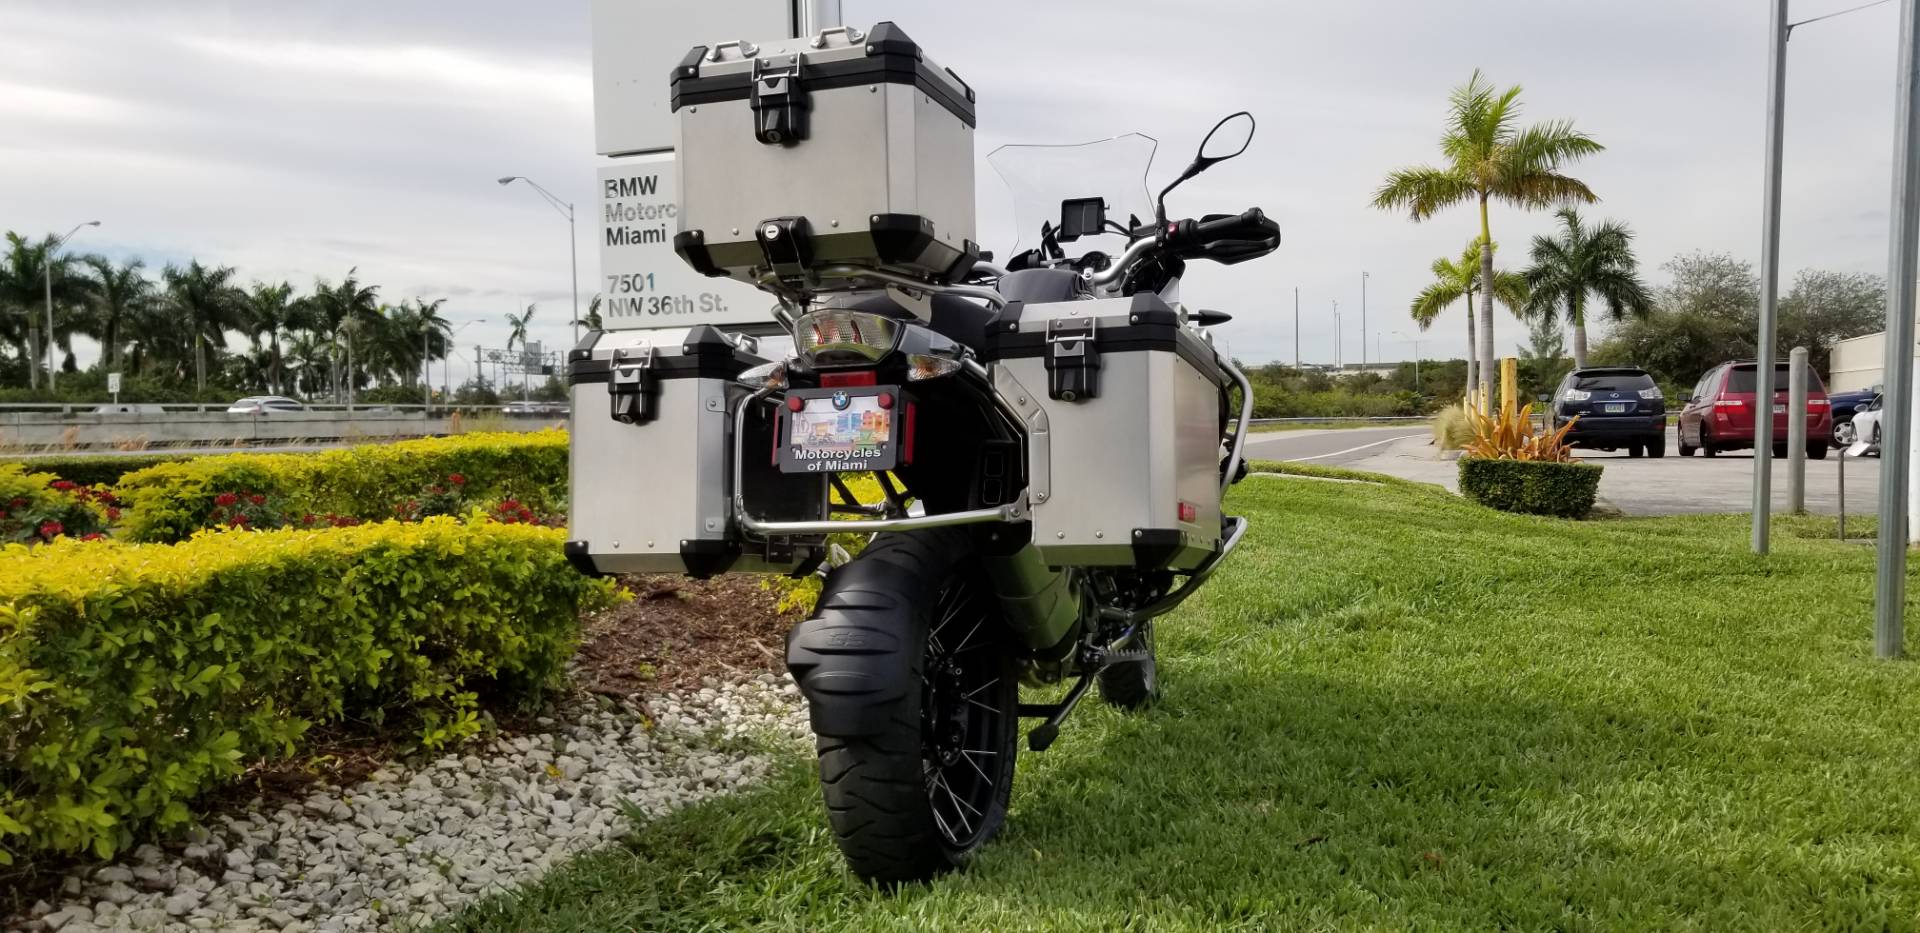 Used 2017 BMW R 1200 GSA for sale, Pre-owned BMW R1200GSA for sale, BMW Motorcycle Adventure, used BMW Adventure triple black, BMW Motorcycles of Miami, Motorcycles of Miami, Motorcycles Miami, New Motorcycles, Used Motorcycles, pre-owned. #BMWMotorcyclesOfMiami #MotorcyclesOfMiami - Photo 13